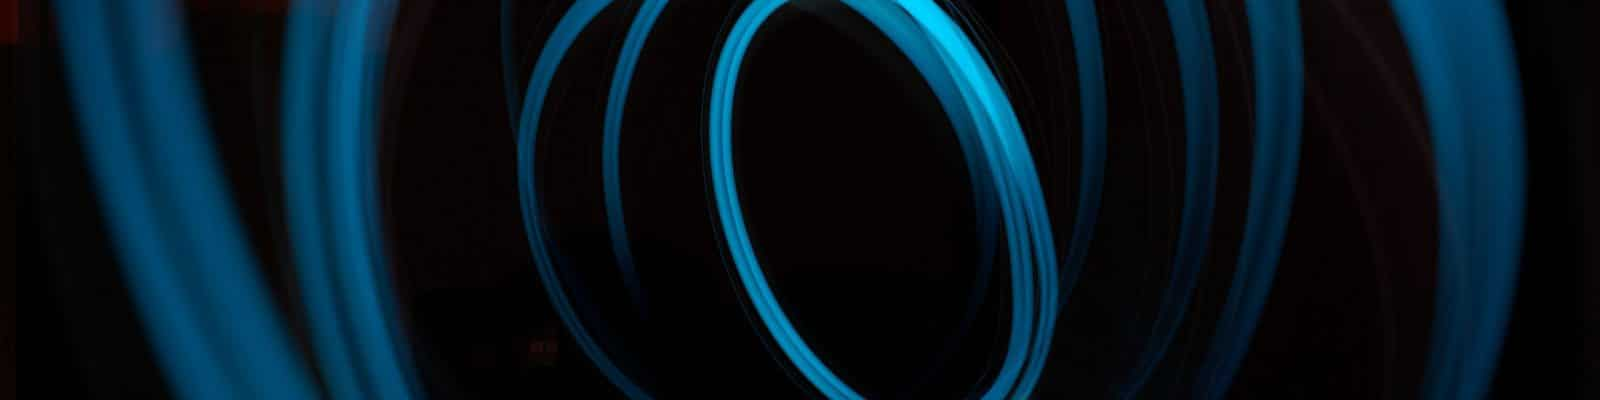 blue fiber optic swirls on black background - tech news today cover image